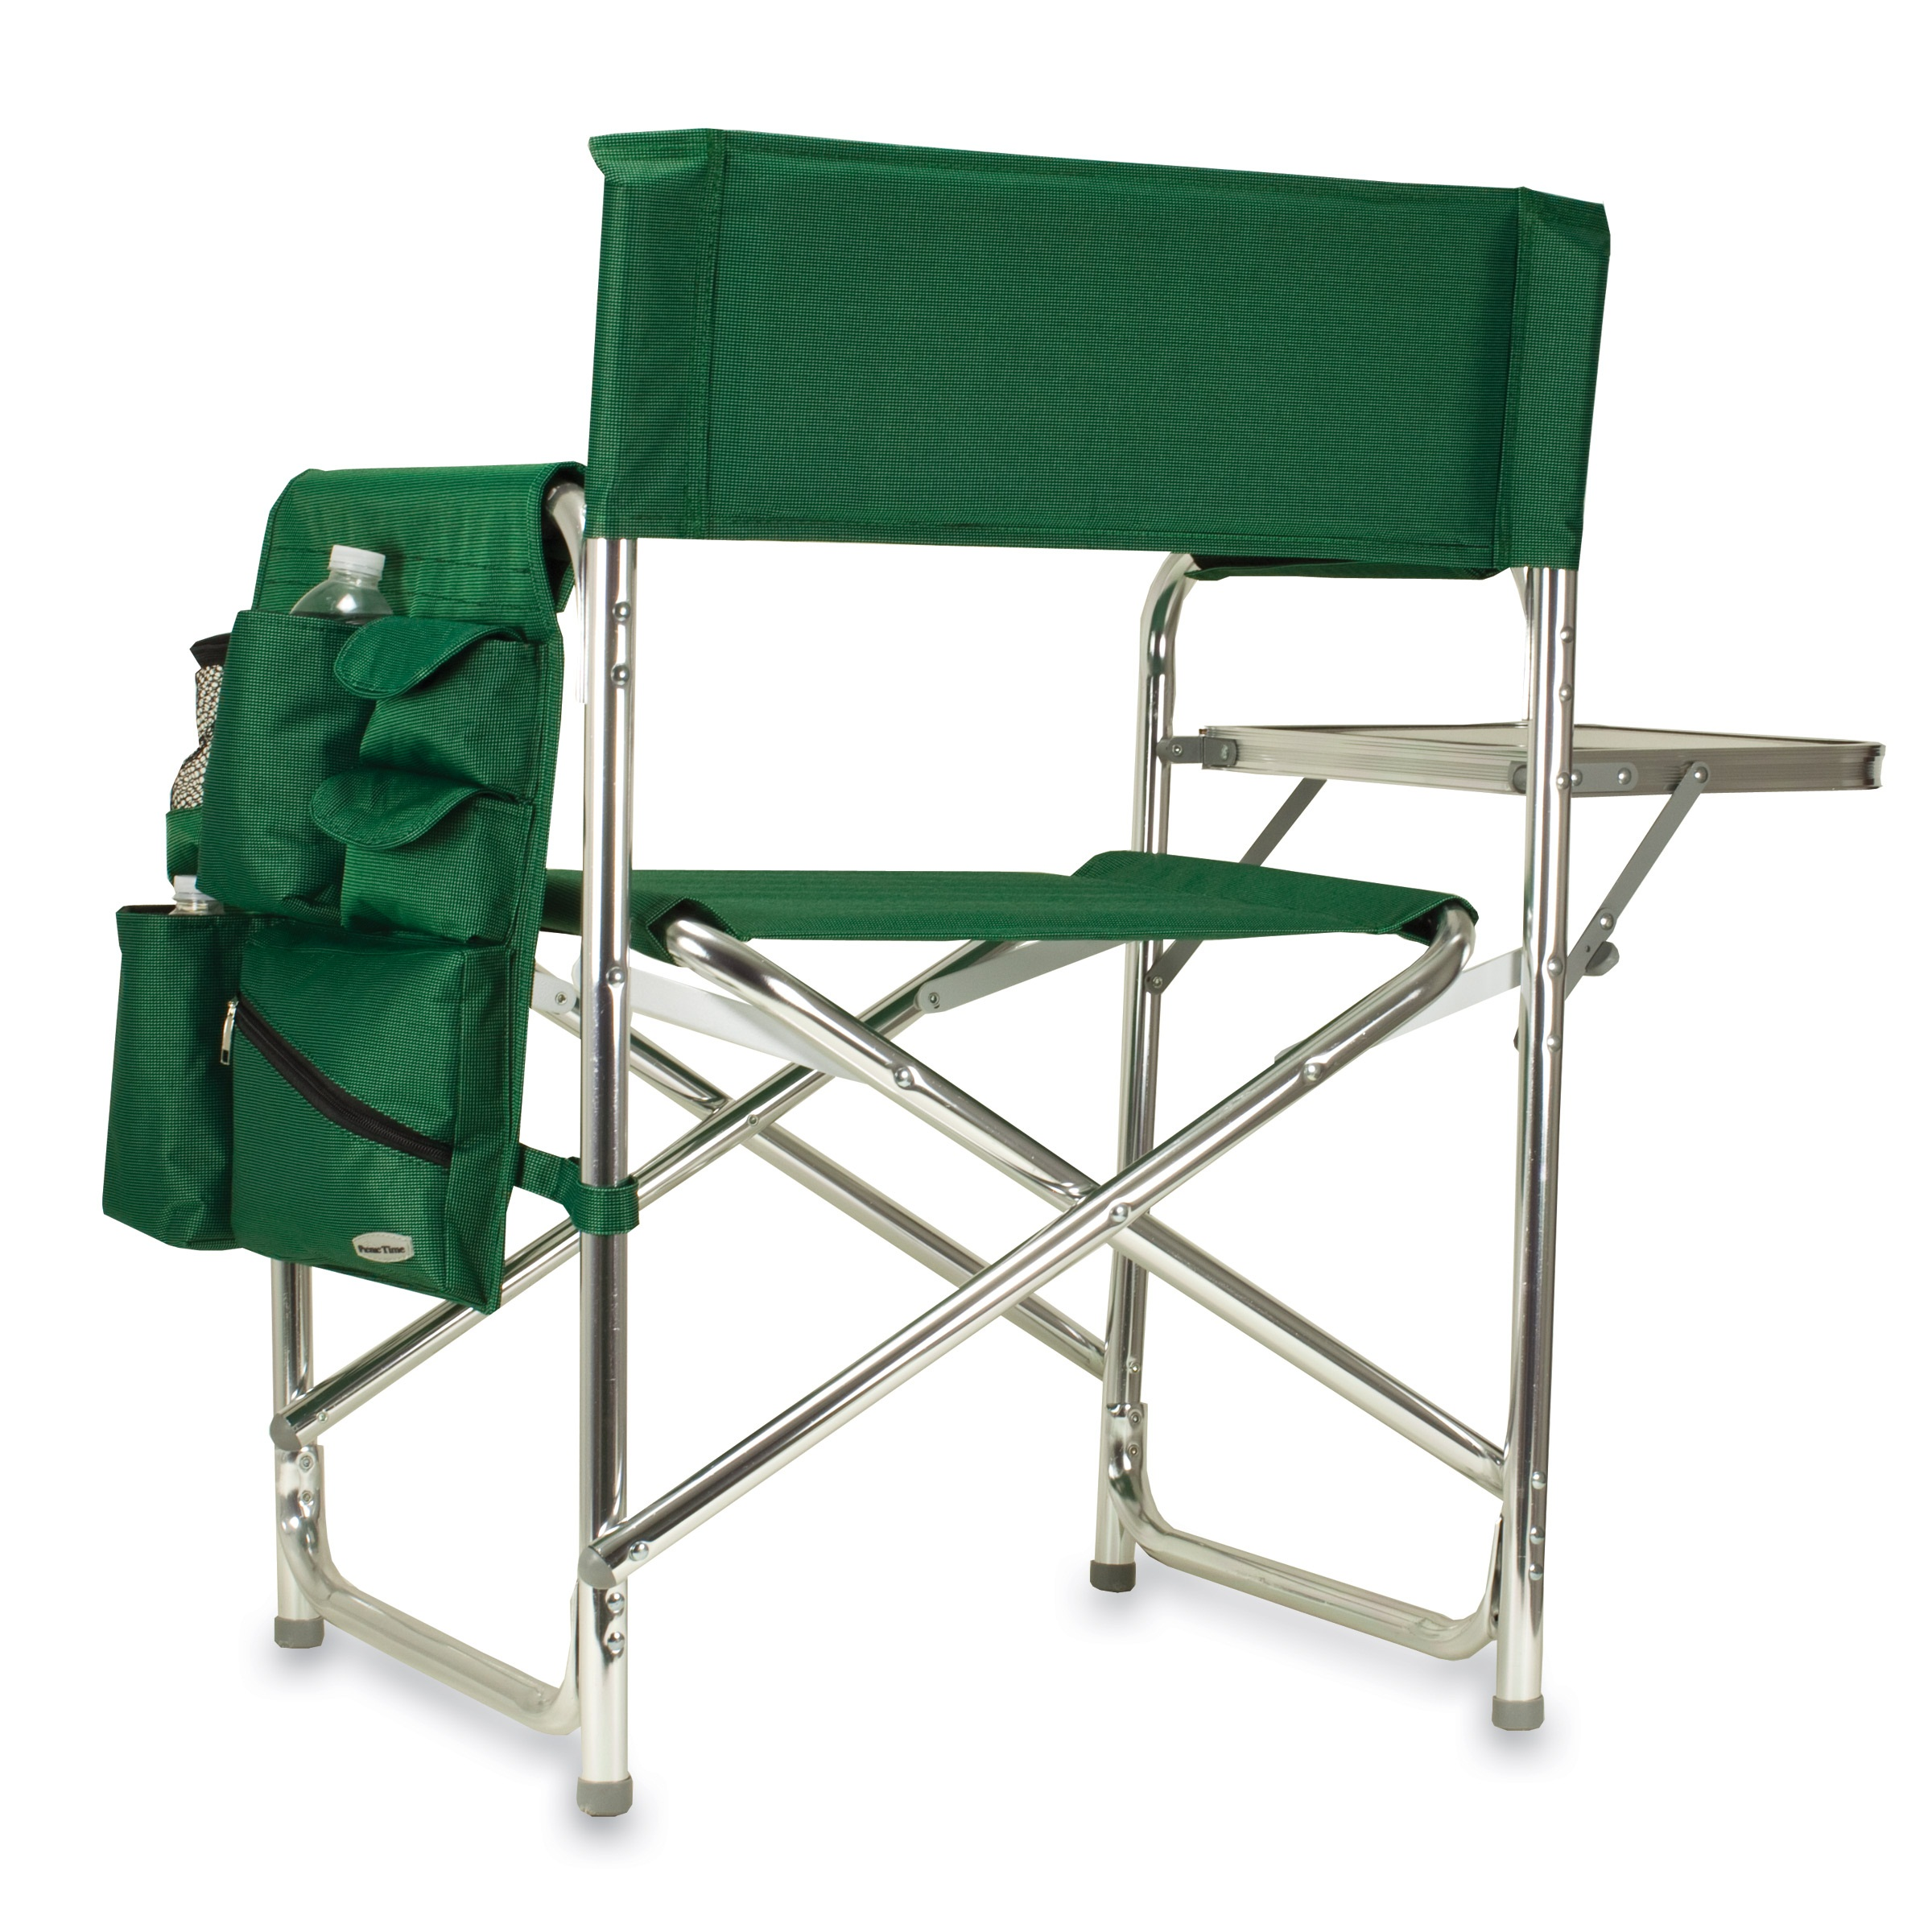 Picnic Time Sports Chair Picnic Time Green Portable Folding Sports Camping Chair